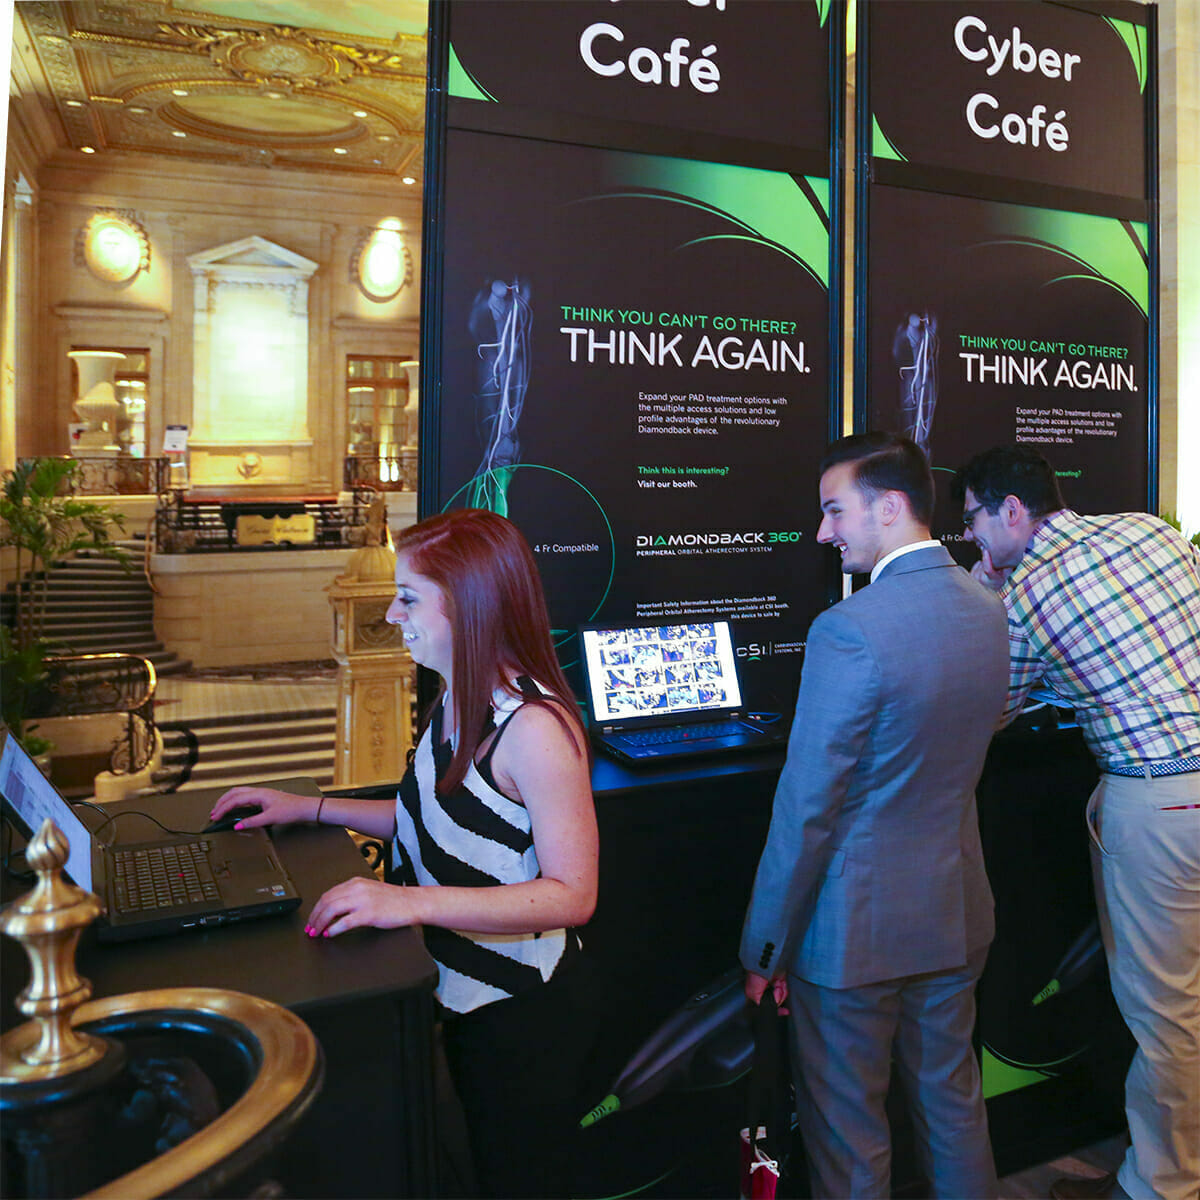 Chicago Convention Photography of Attendees using Cyber Cafe at Medical Convention